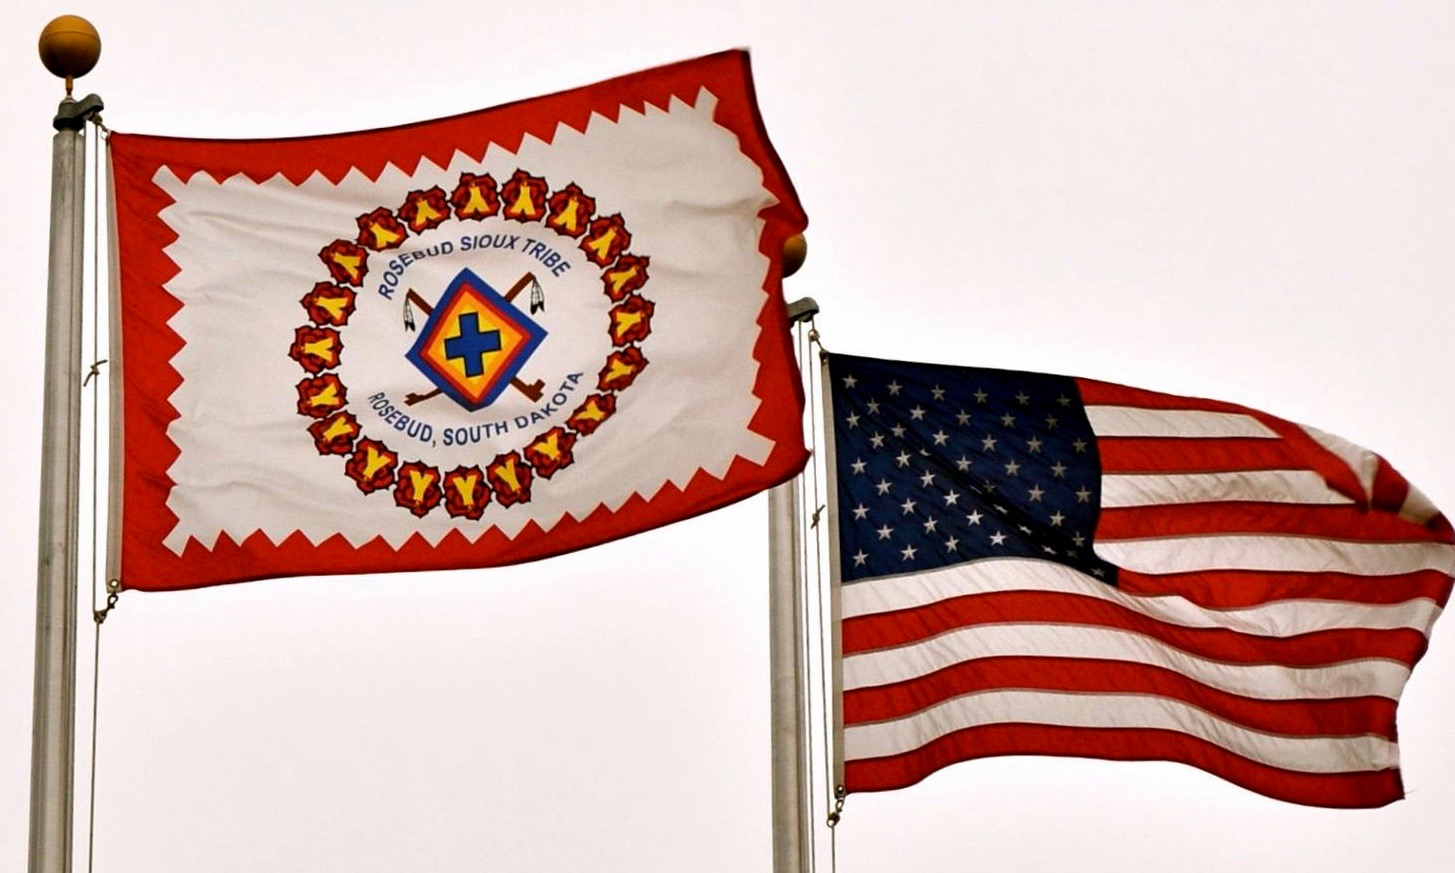 CAIRNS Column: Examining the flag of the Rosebud Sioux Tribe